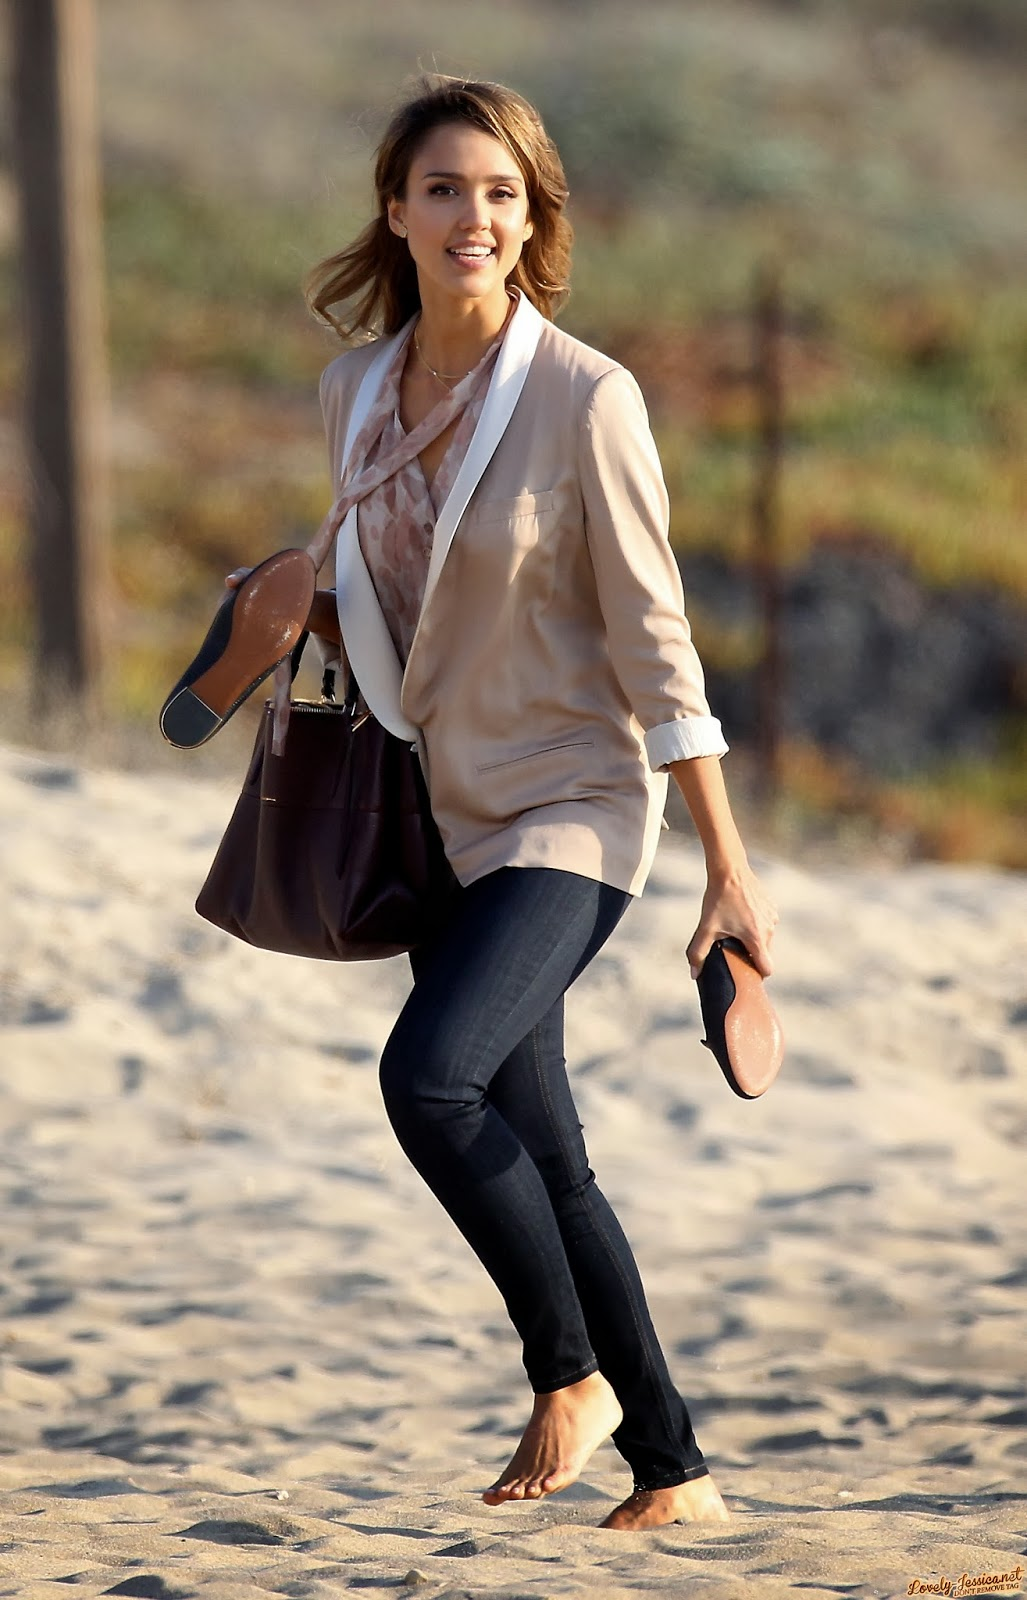 Barefoot celebrities jessica alba barefoot on the beach for Jessica alba beach pictures